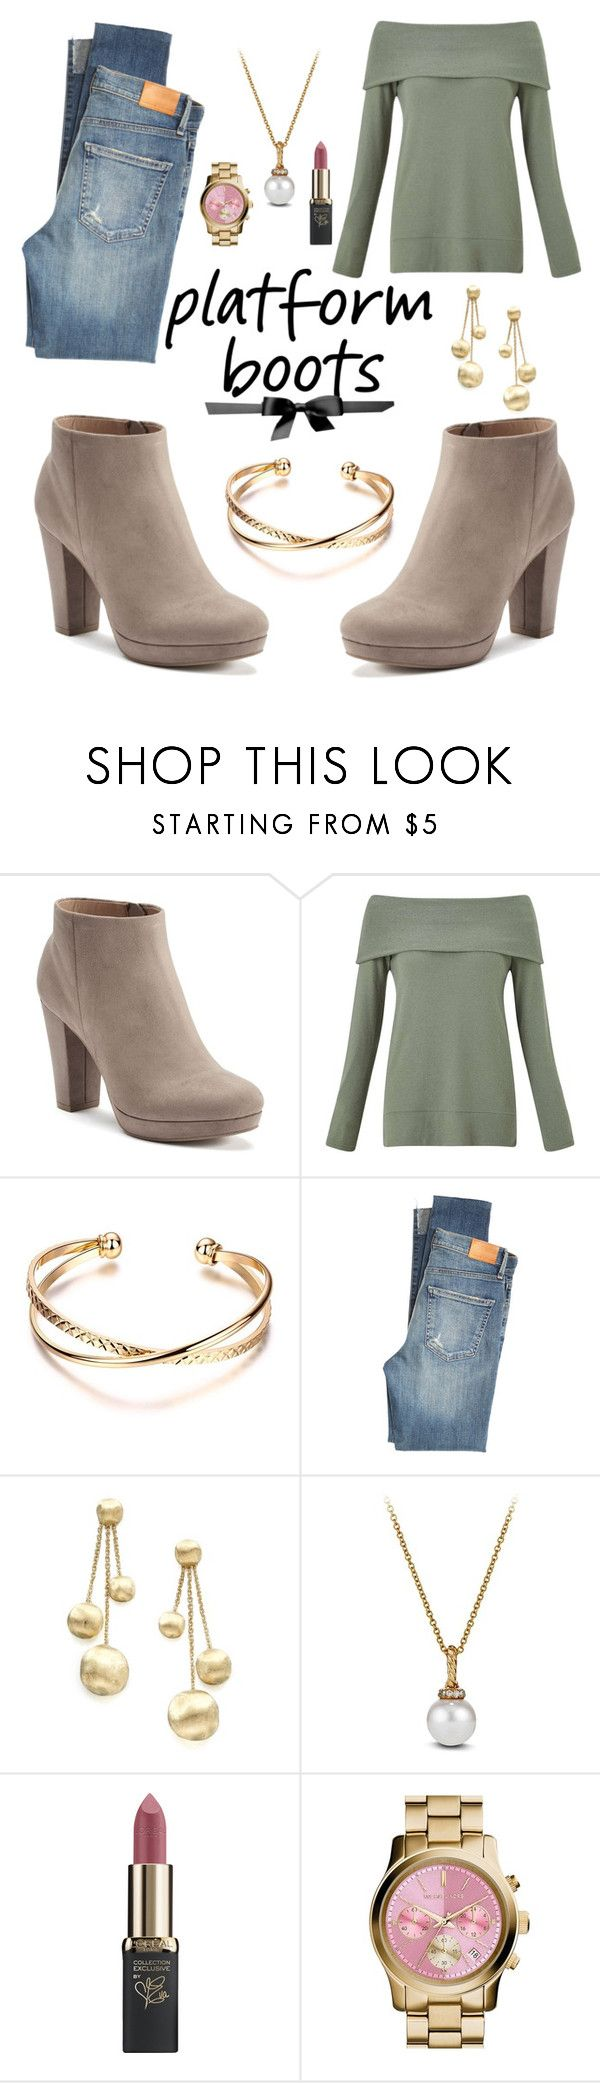 """""""Platform Boot"""" by csidlo17 ❤ liked on Polyvore featuring LC Lauren Conrad, Miss Selfridge, Citizens of Humanity, Marco Bicego, David Yurman, L'Oréal Paris and MICHAEL Michael Kors"""